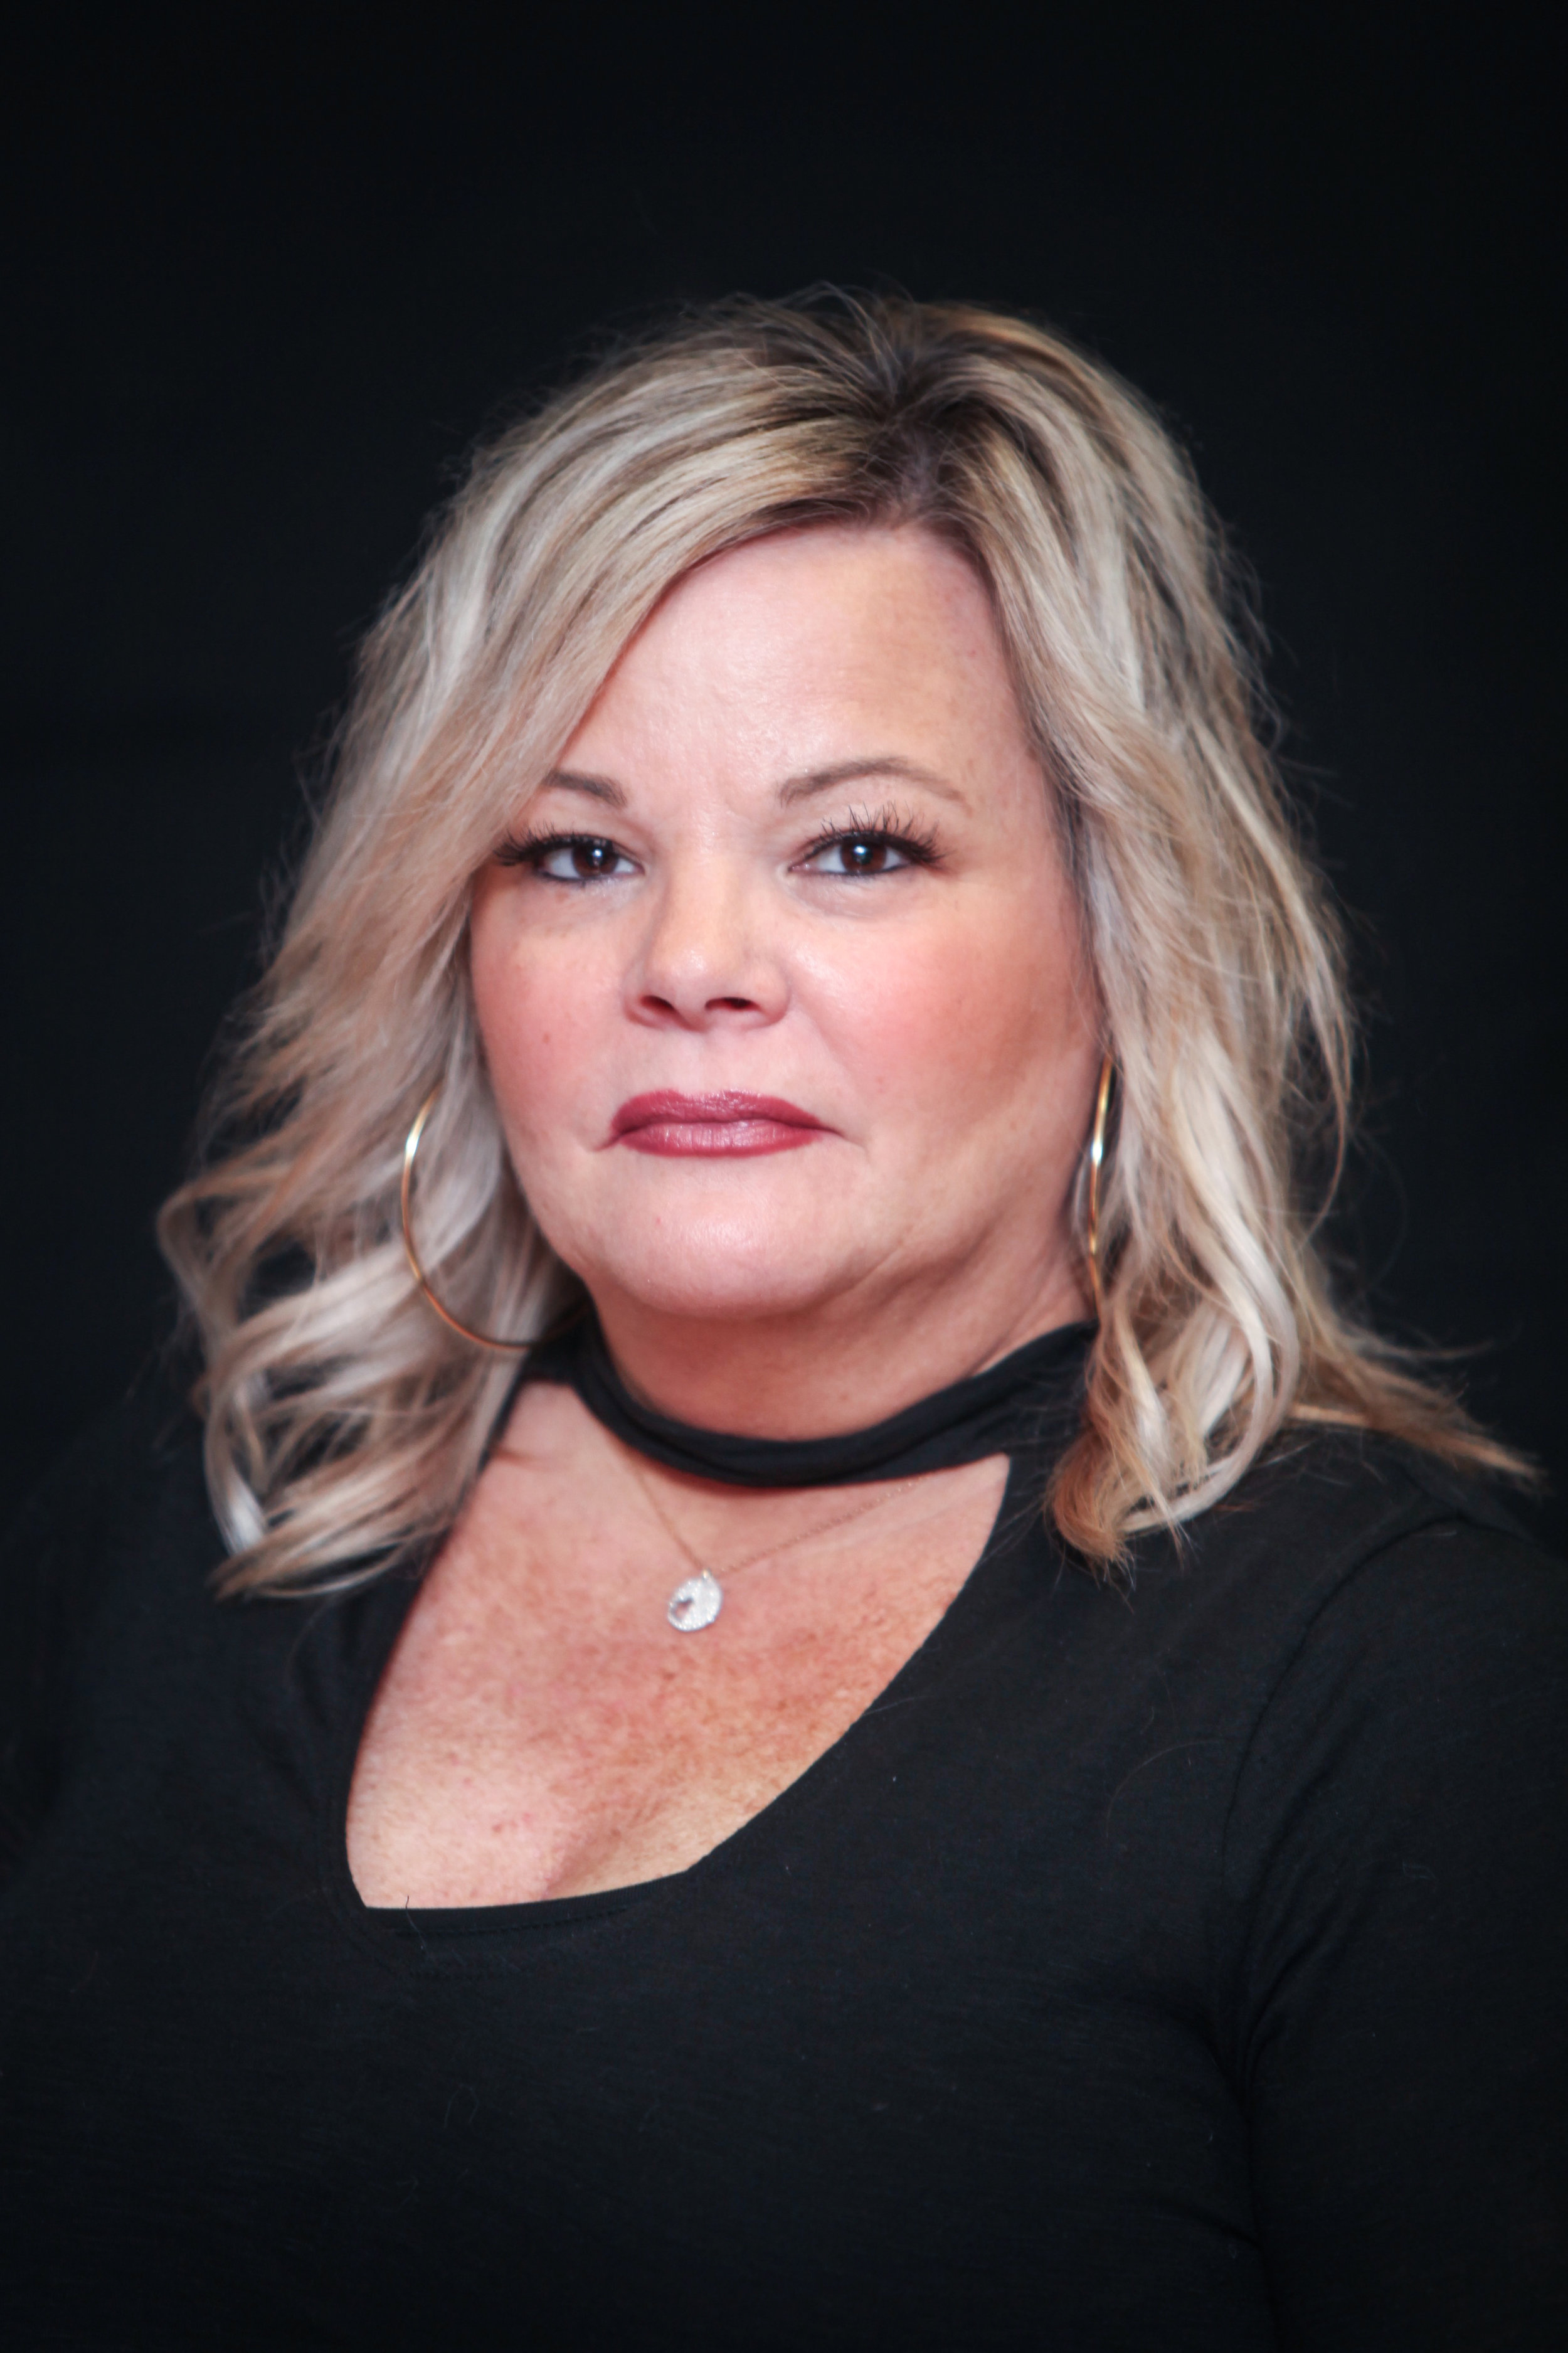 "Trained at the renown Brocato International, Debra , with over 28 years of experience in the beauty industry, recently has joined our expanding team of professionals. Because of her expertise and charm, she gets great satisfaction from making sure that every person who sits in her chair feels amazing about him or herself. In the ever changing field of hair, she educates herself to master new color and hair techniques. Debbie is an expert in ""tape-in hair extensions. "" Being certified and having years of practice, she has learned the art of quick and perfectly seamless extensions. In addition to hair extensions, Debbie has become skilled at Keratin treatments, corrective color, highlights, men and women's haircuts using advanced techniques, such as balayage and ombres, She takes the time to understand her client's personality and lifestyle to create the best look for each individual client. With her mastery skills and knowledge, she will make all her clients beautiful, confident, and dazzling!"